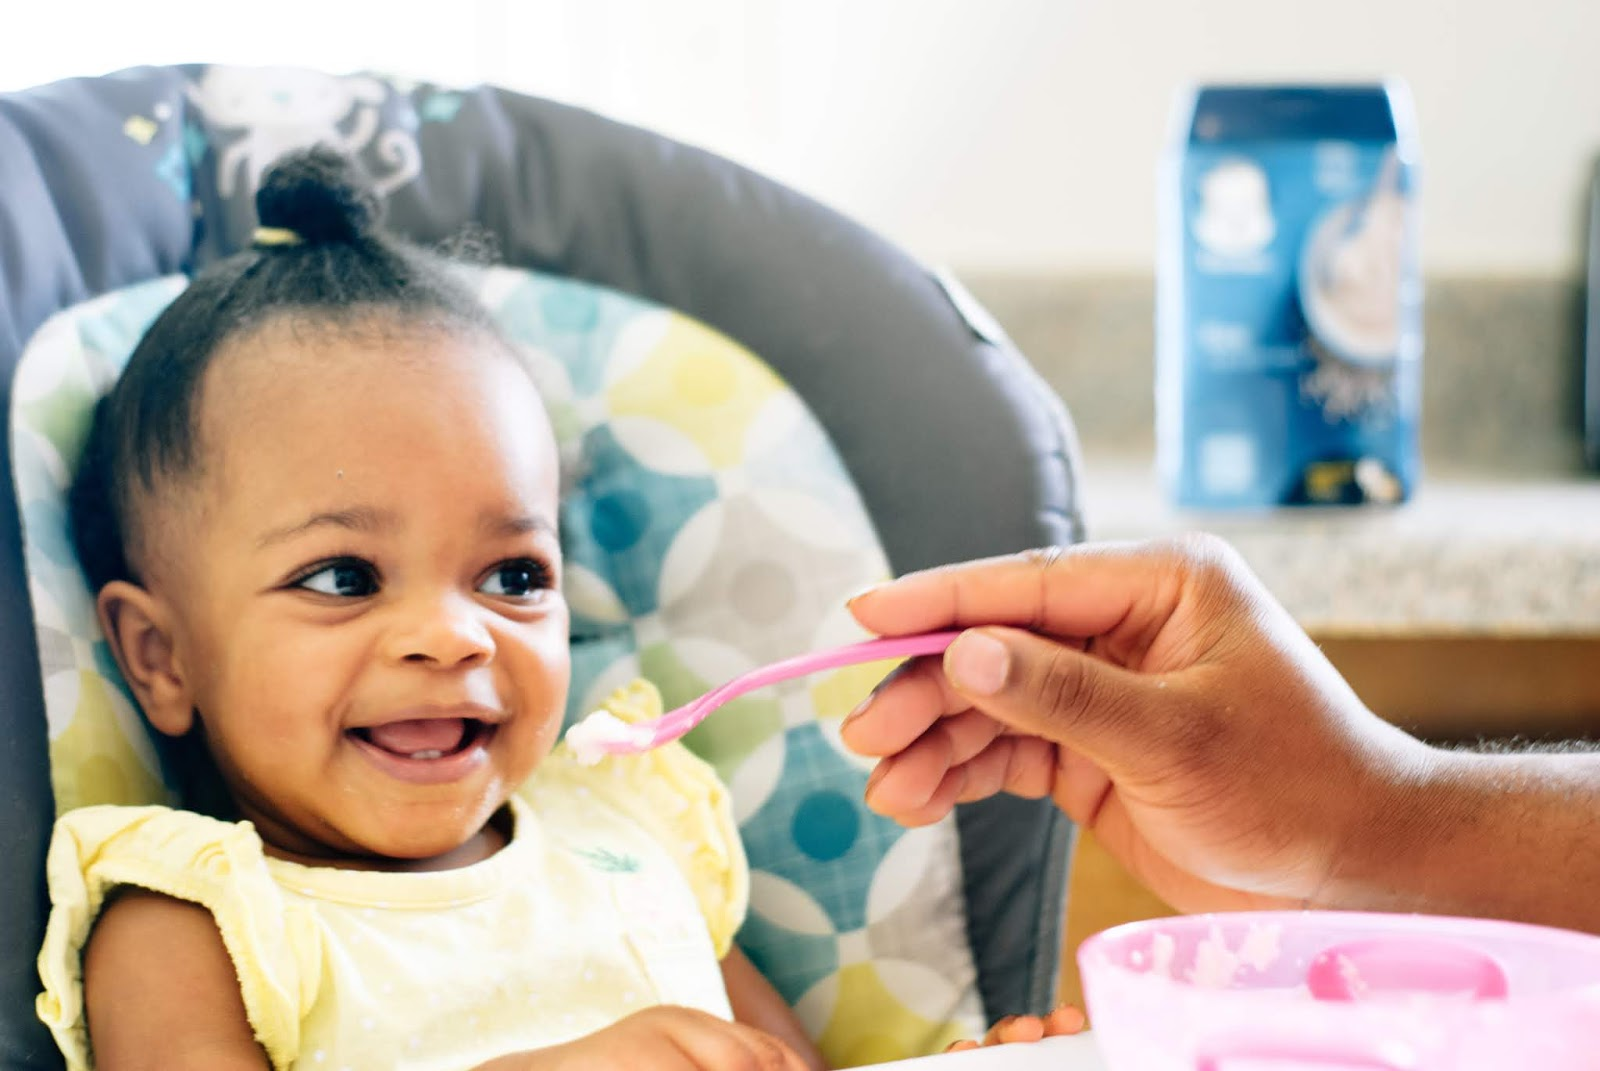 It's no secret that new parents want to give their baby the best start in life. An easy way to boost baby's brain development is through stimulating baby's brain with activities we already do everyday! Here are five easy ways I (and you!) can boost baby's brain development.